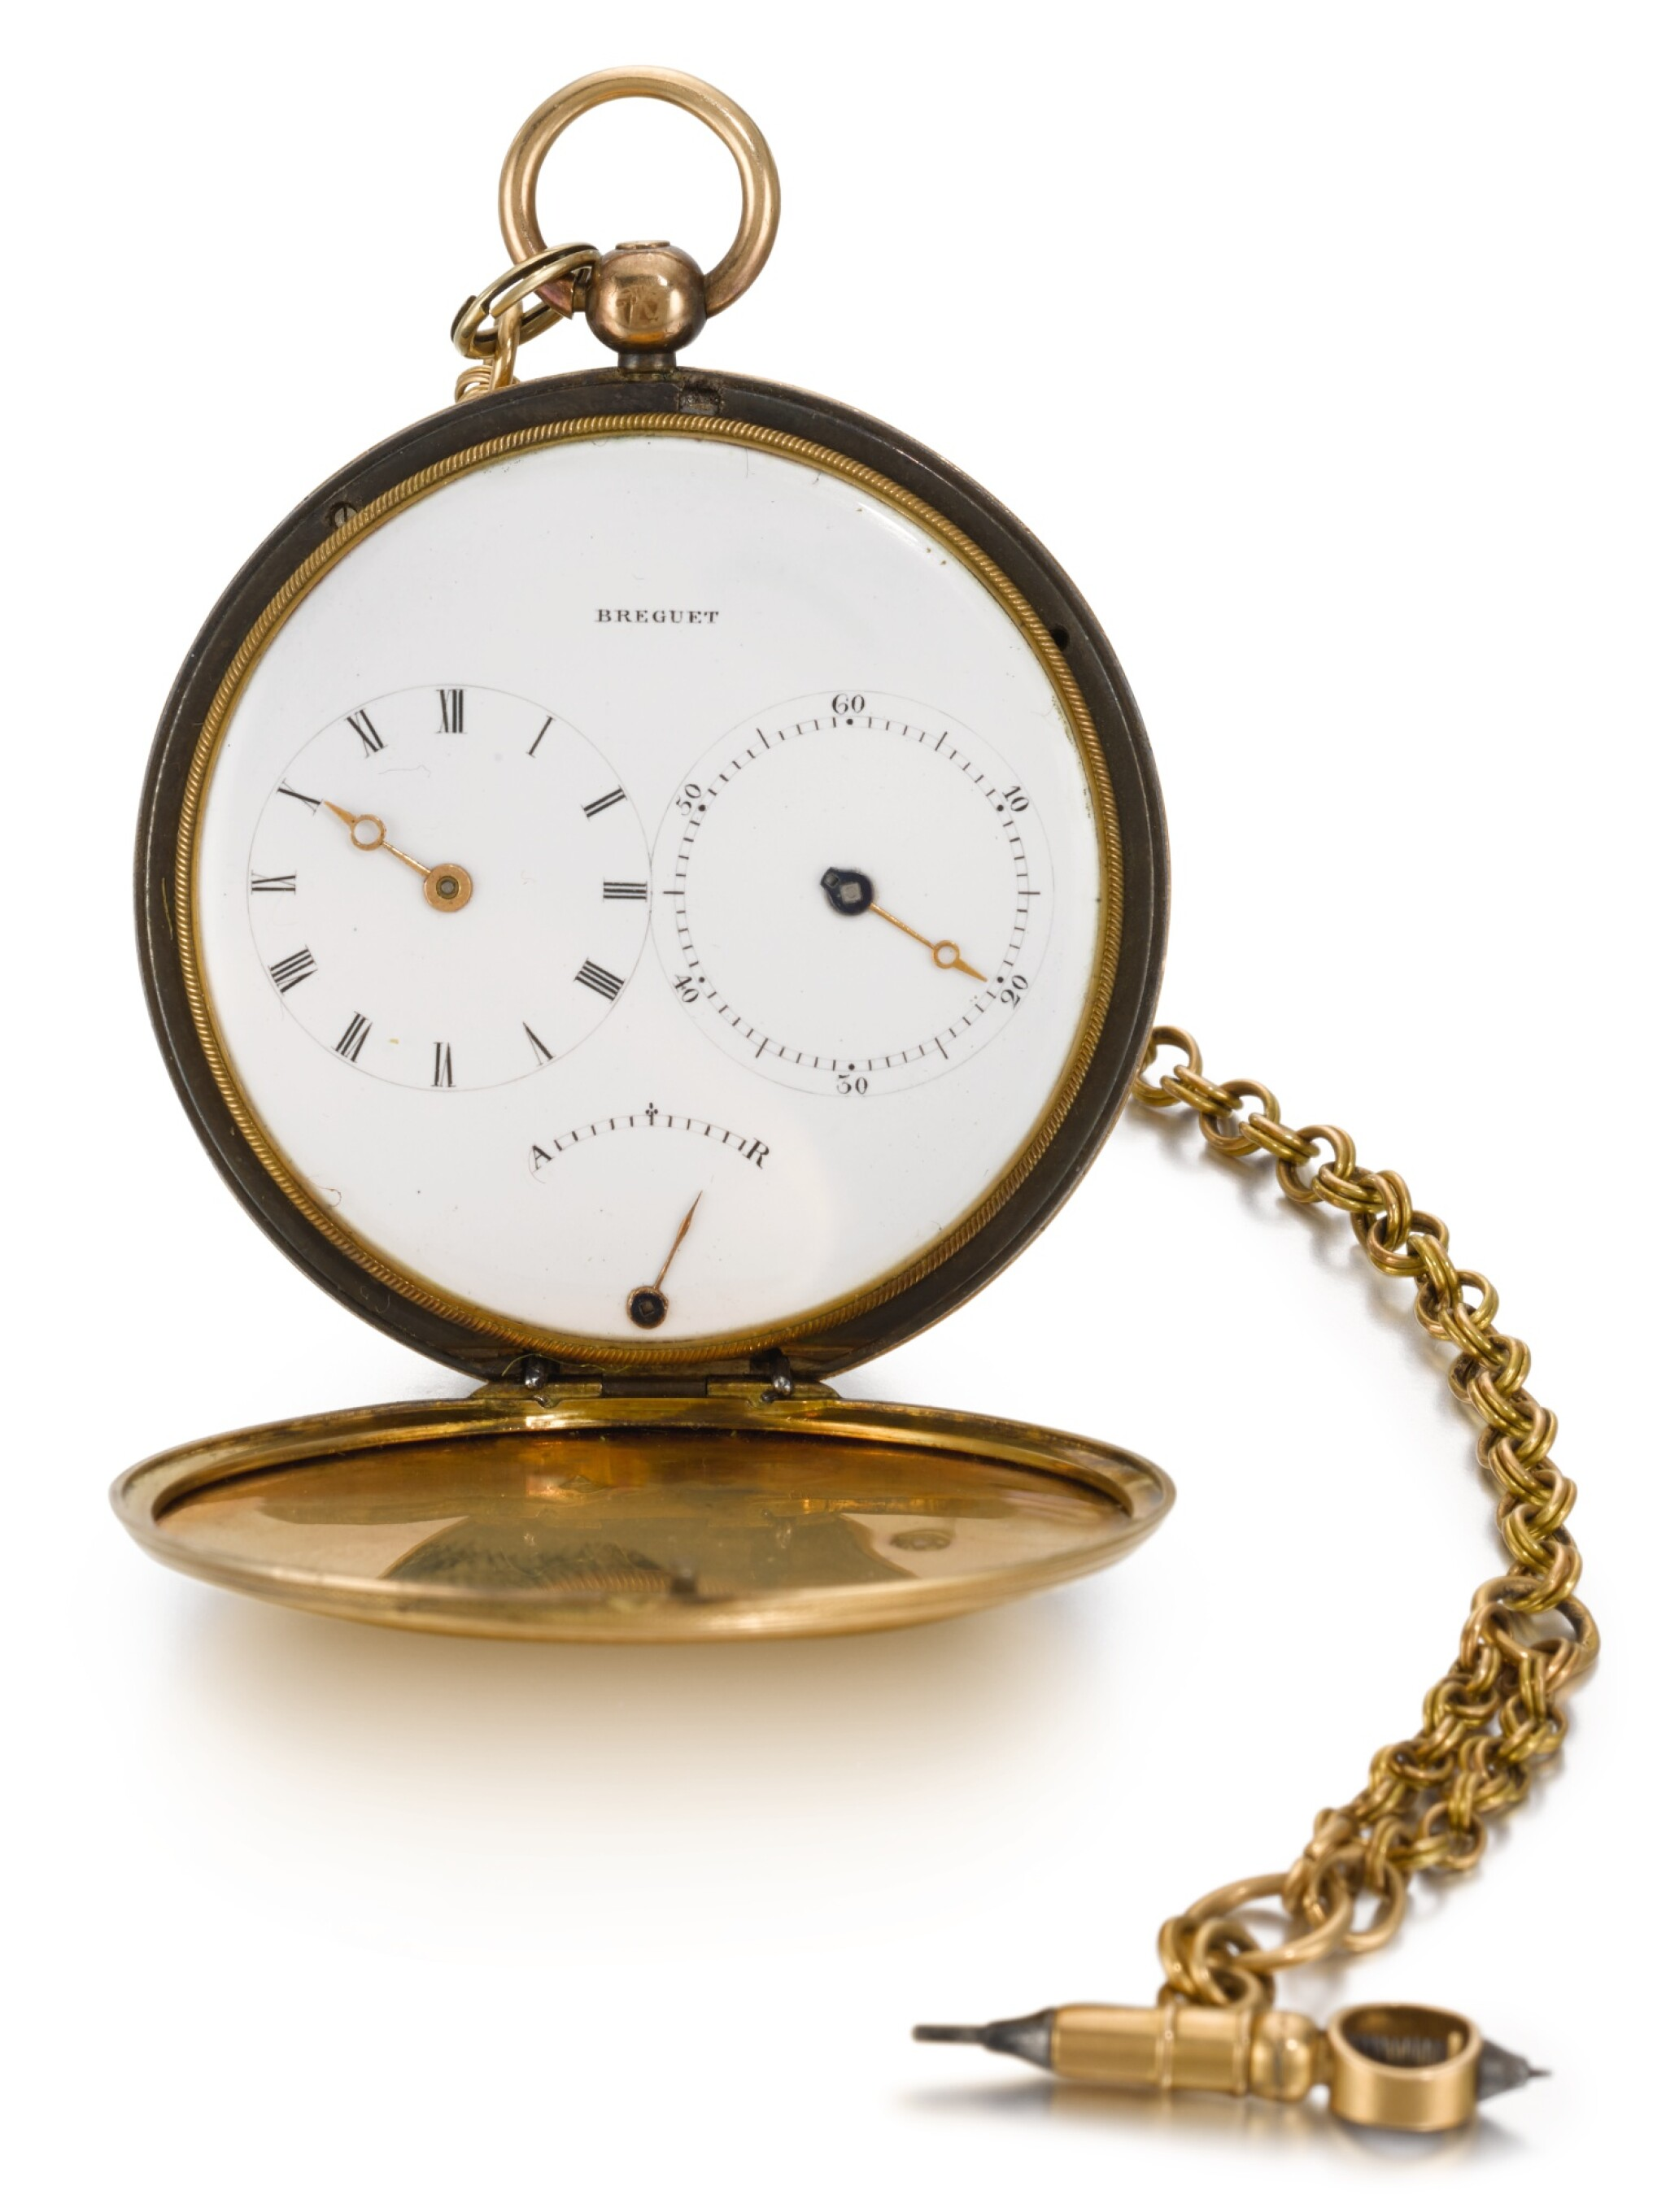 View full screen - View 1 of Lot 30. BREGUET  [ 寶璣]  | A RARE AND SLIM GOLD AND SILVER HUNTING CASED RUBY CYLINDER WATCH WITH SUBSIDIARY HOUR AND MINUTE DIALS  NO. 4582 T4130, 'MONTRE SIMPLE TRÈS PLATE' SOLD TO MONSIEUR PASCHKOFF ON 23 MAY 1829 FOR 2,200 FRANCS  [ 罕有黃金及銀製懷錶備紅寶石工字輪擒縱機芯、小時及分鐘小錶盤,編號4582 T4130,1829年5月23日以2,200法郎售出].